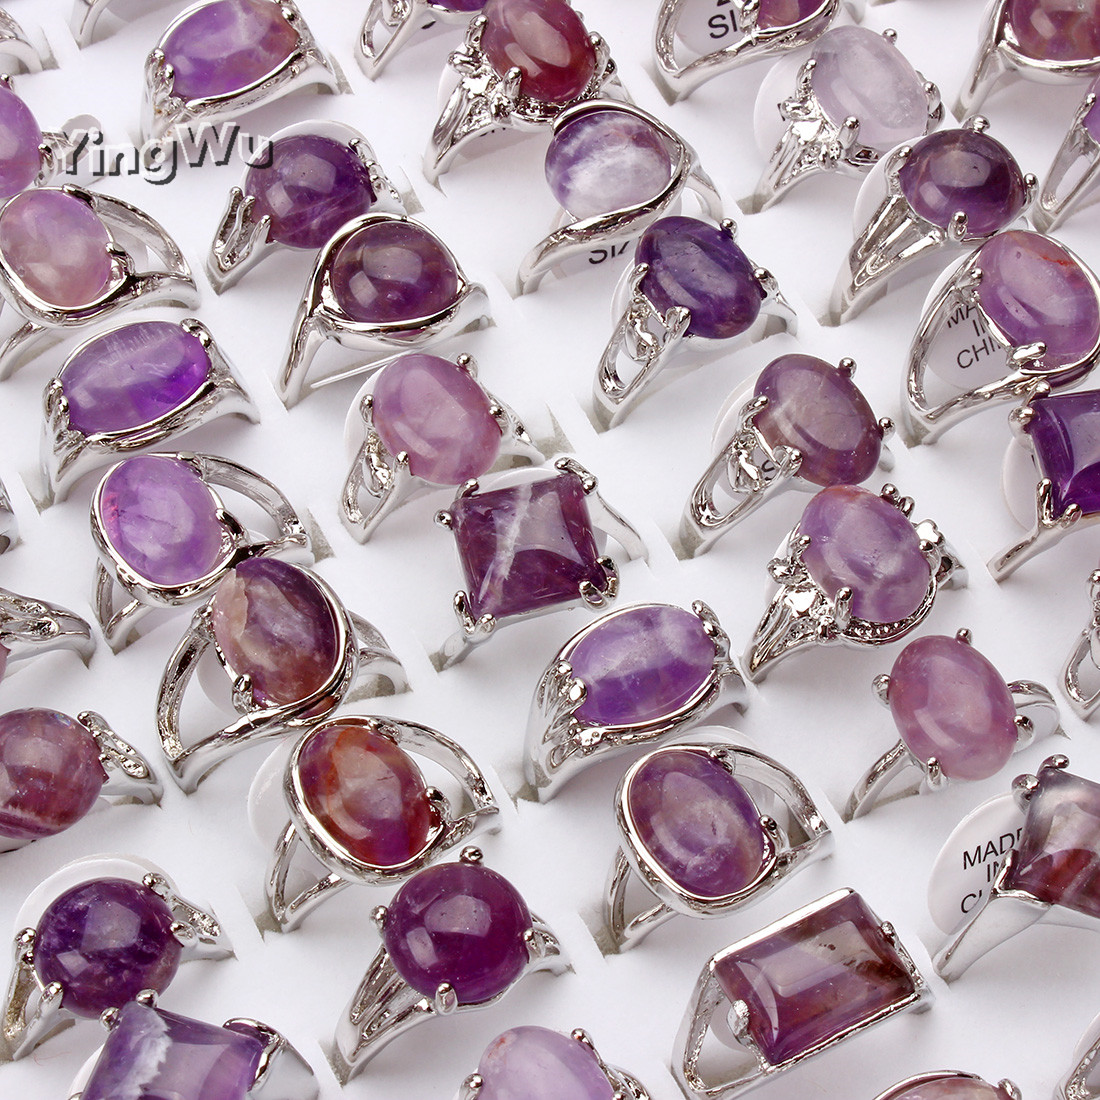 Yingwu 30pcs Lot Wholesale Natural Amethyst Stone Crystal Finger Rings For Women Fashion Jewelry Accessory Party Gifts